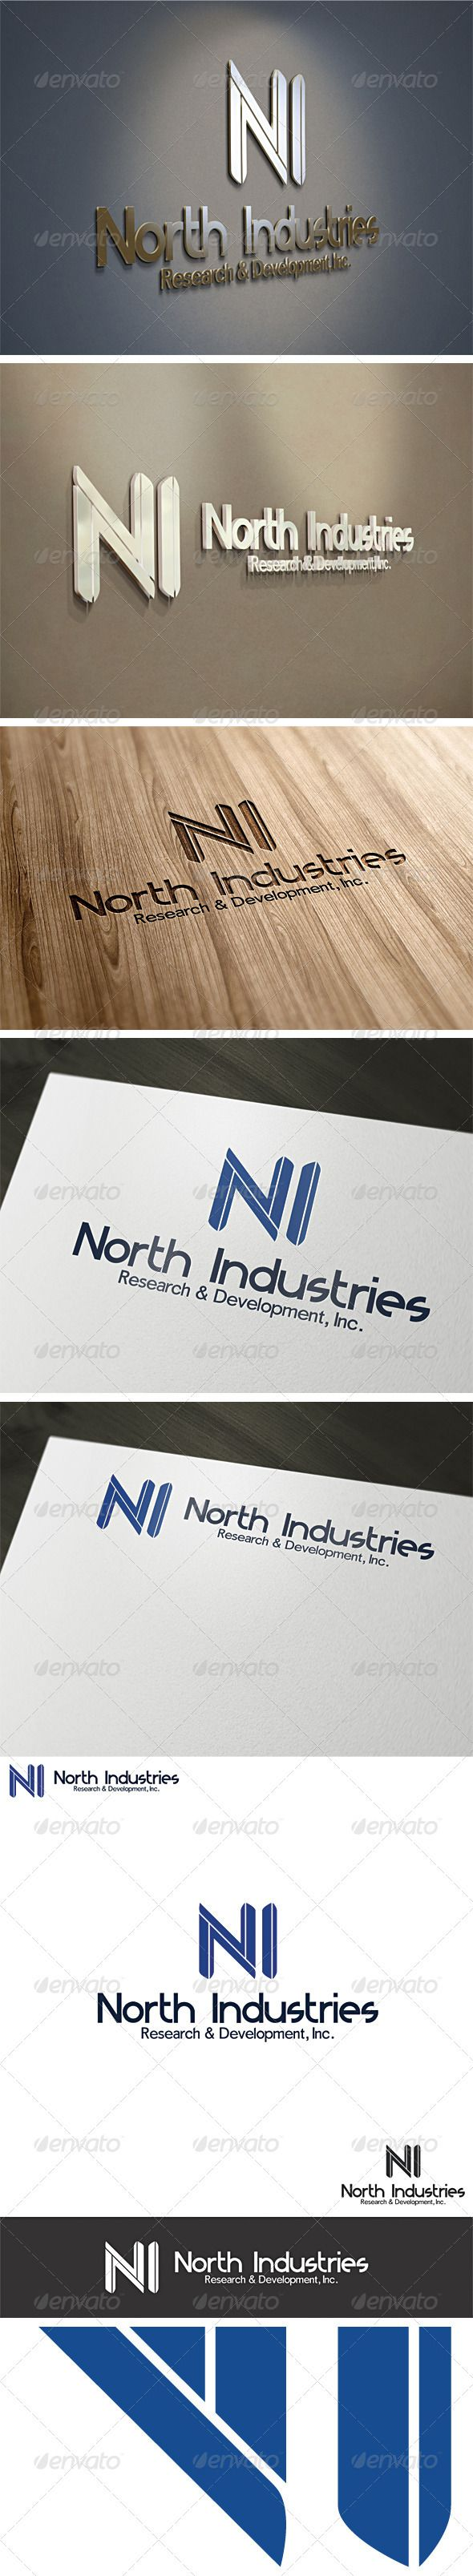 Letter N or I  - Logo Design Template Vector #logotype Download it here: http://graphicriver.net/item/letter-n-or-i-logo-template/2557606?s_rank=1726?ref=nexion